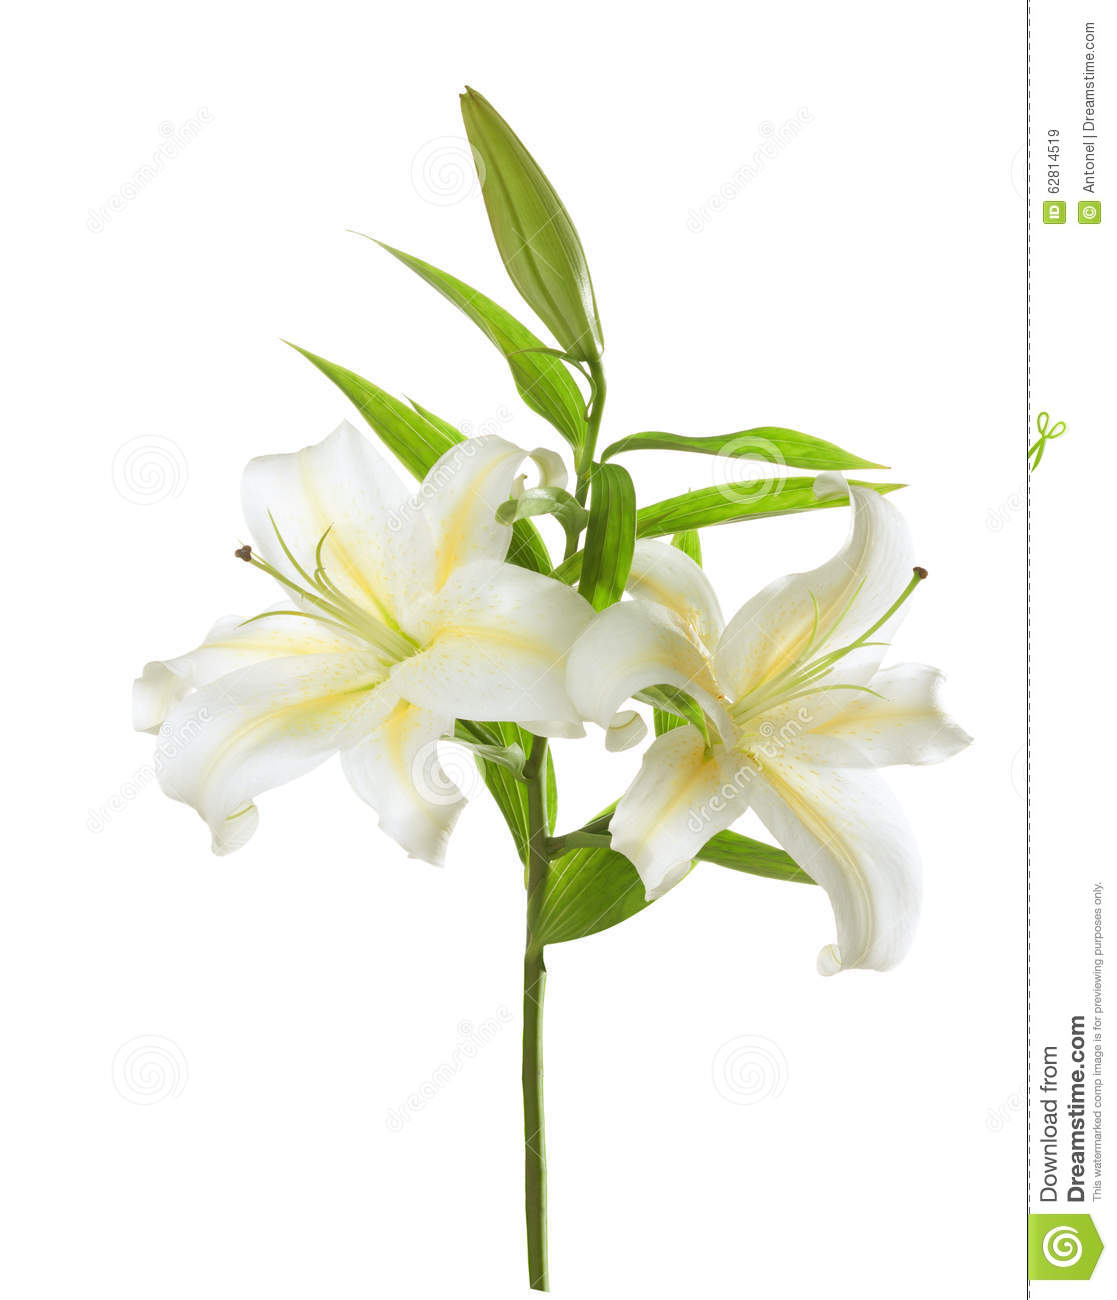 two white lilies stock photo image 62814519. Black Bedroom Furniture Sets. Home Design Ideas